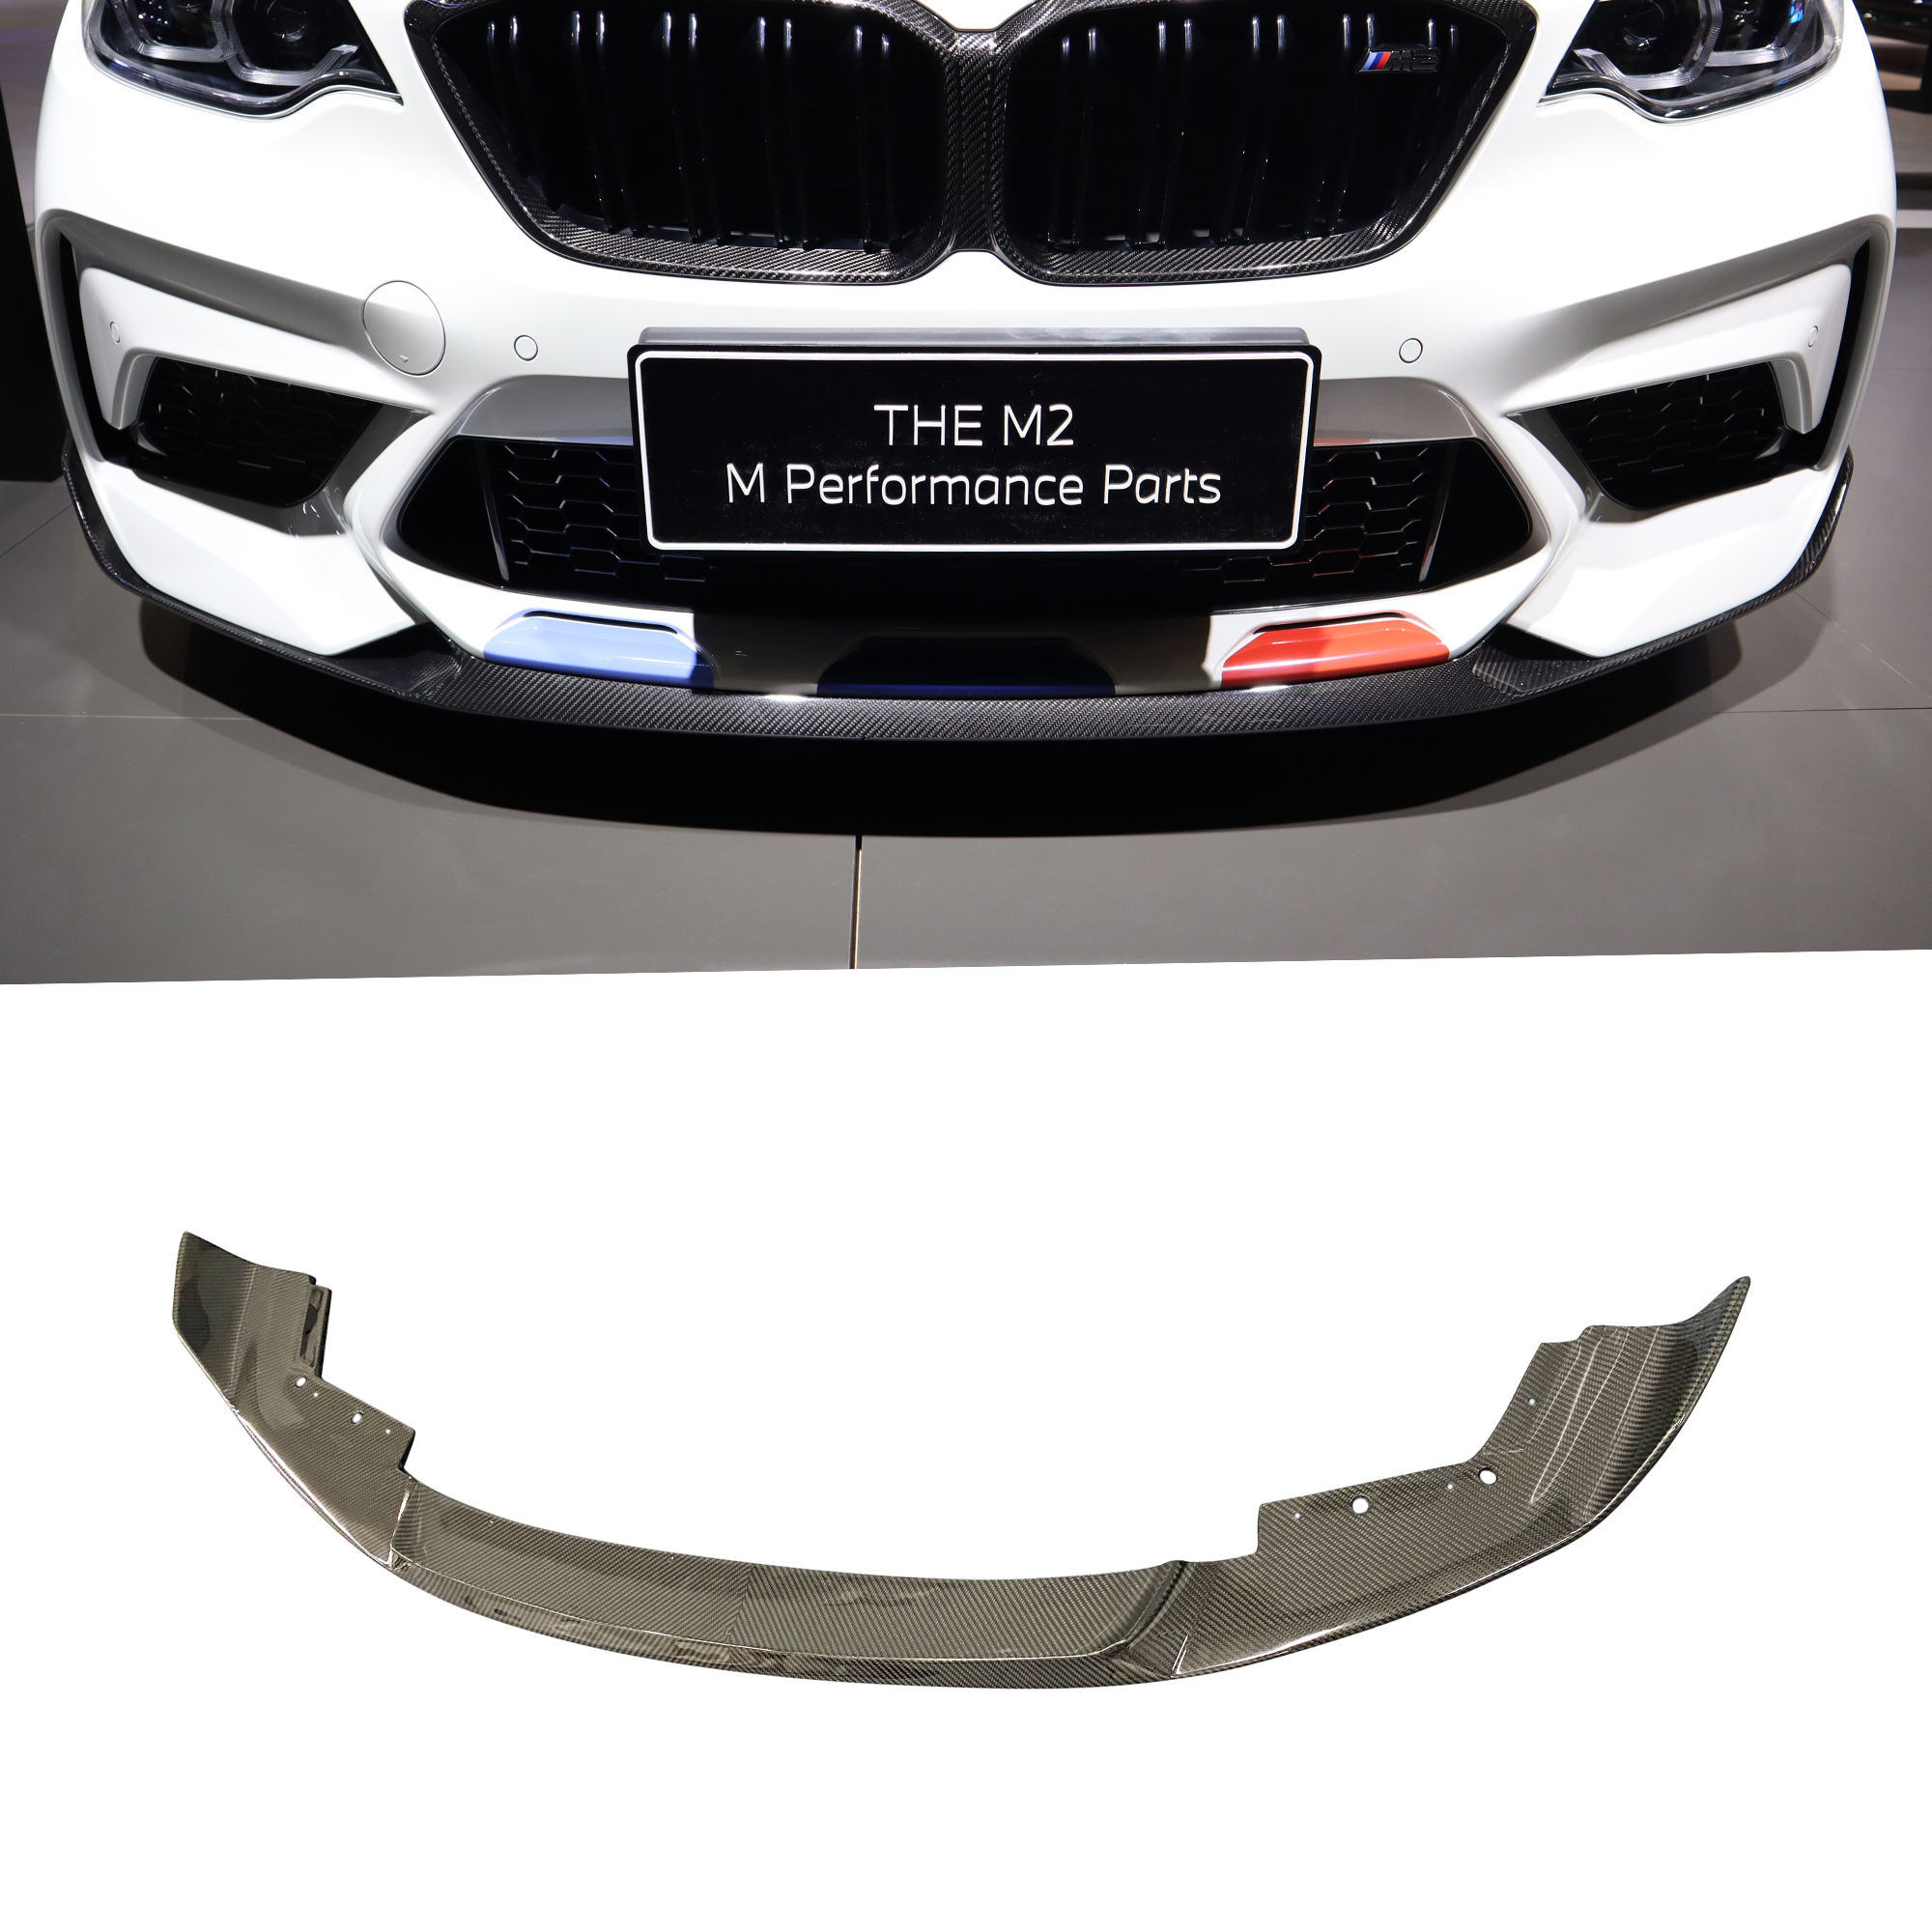 MP style high quality carbon fiber front lip for M2C